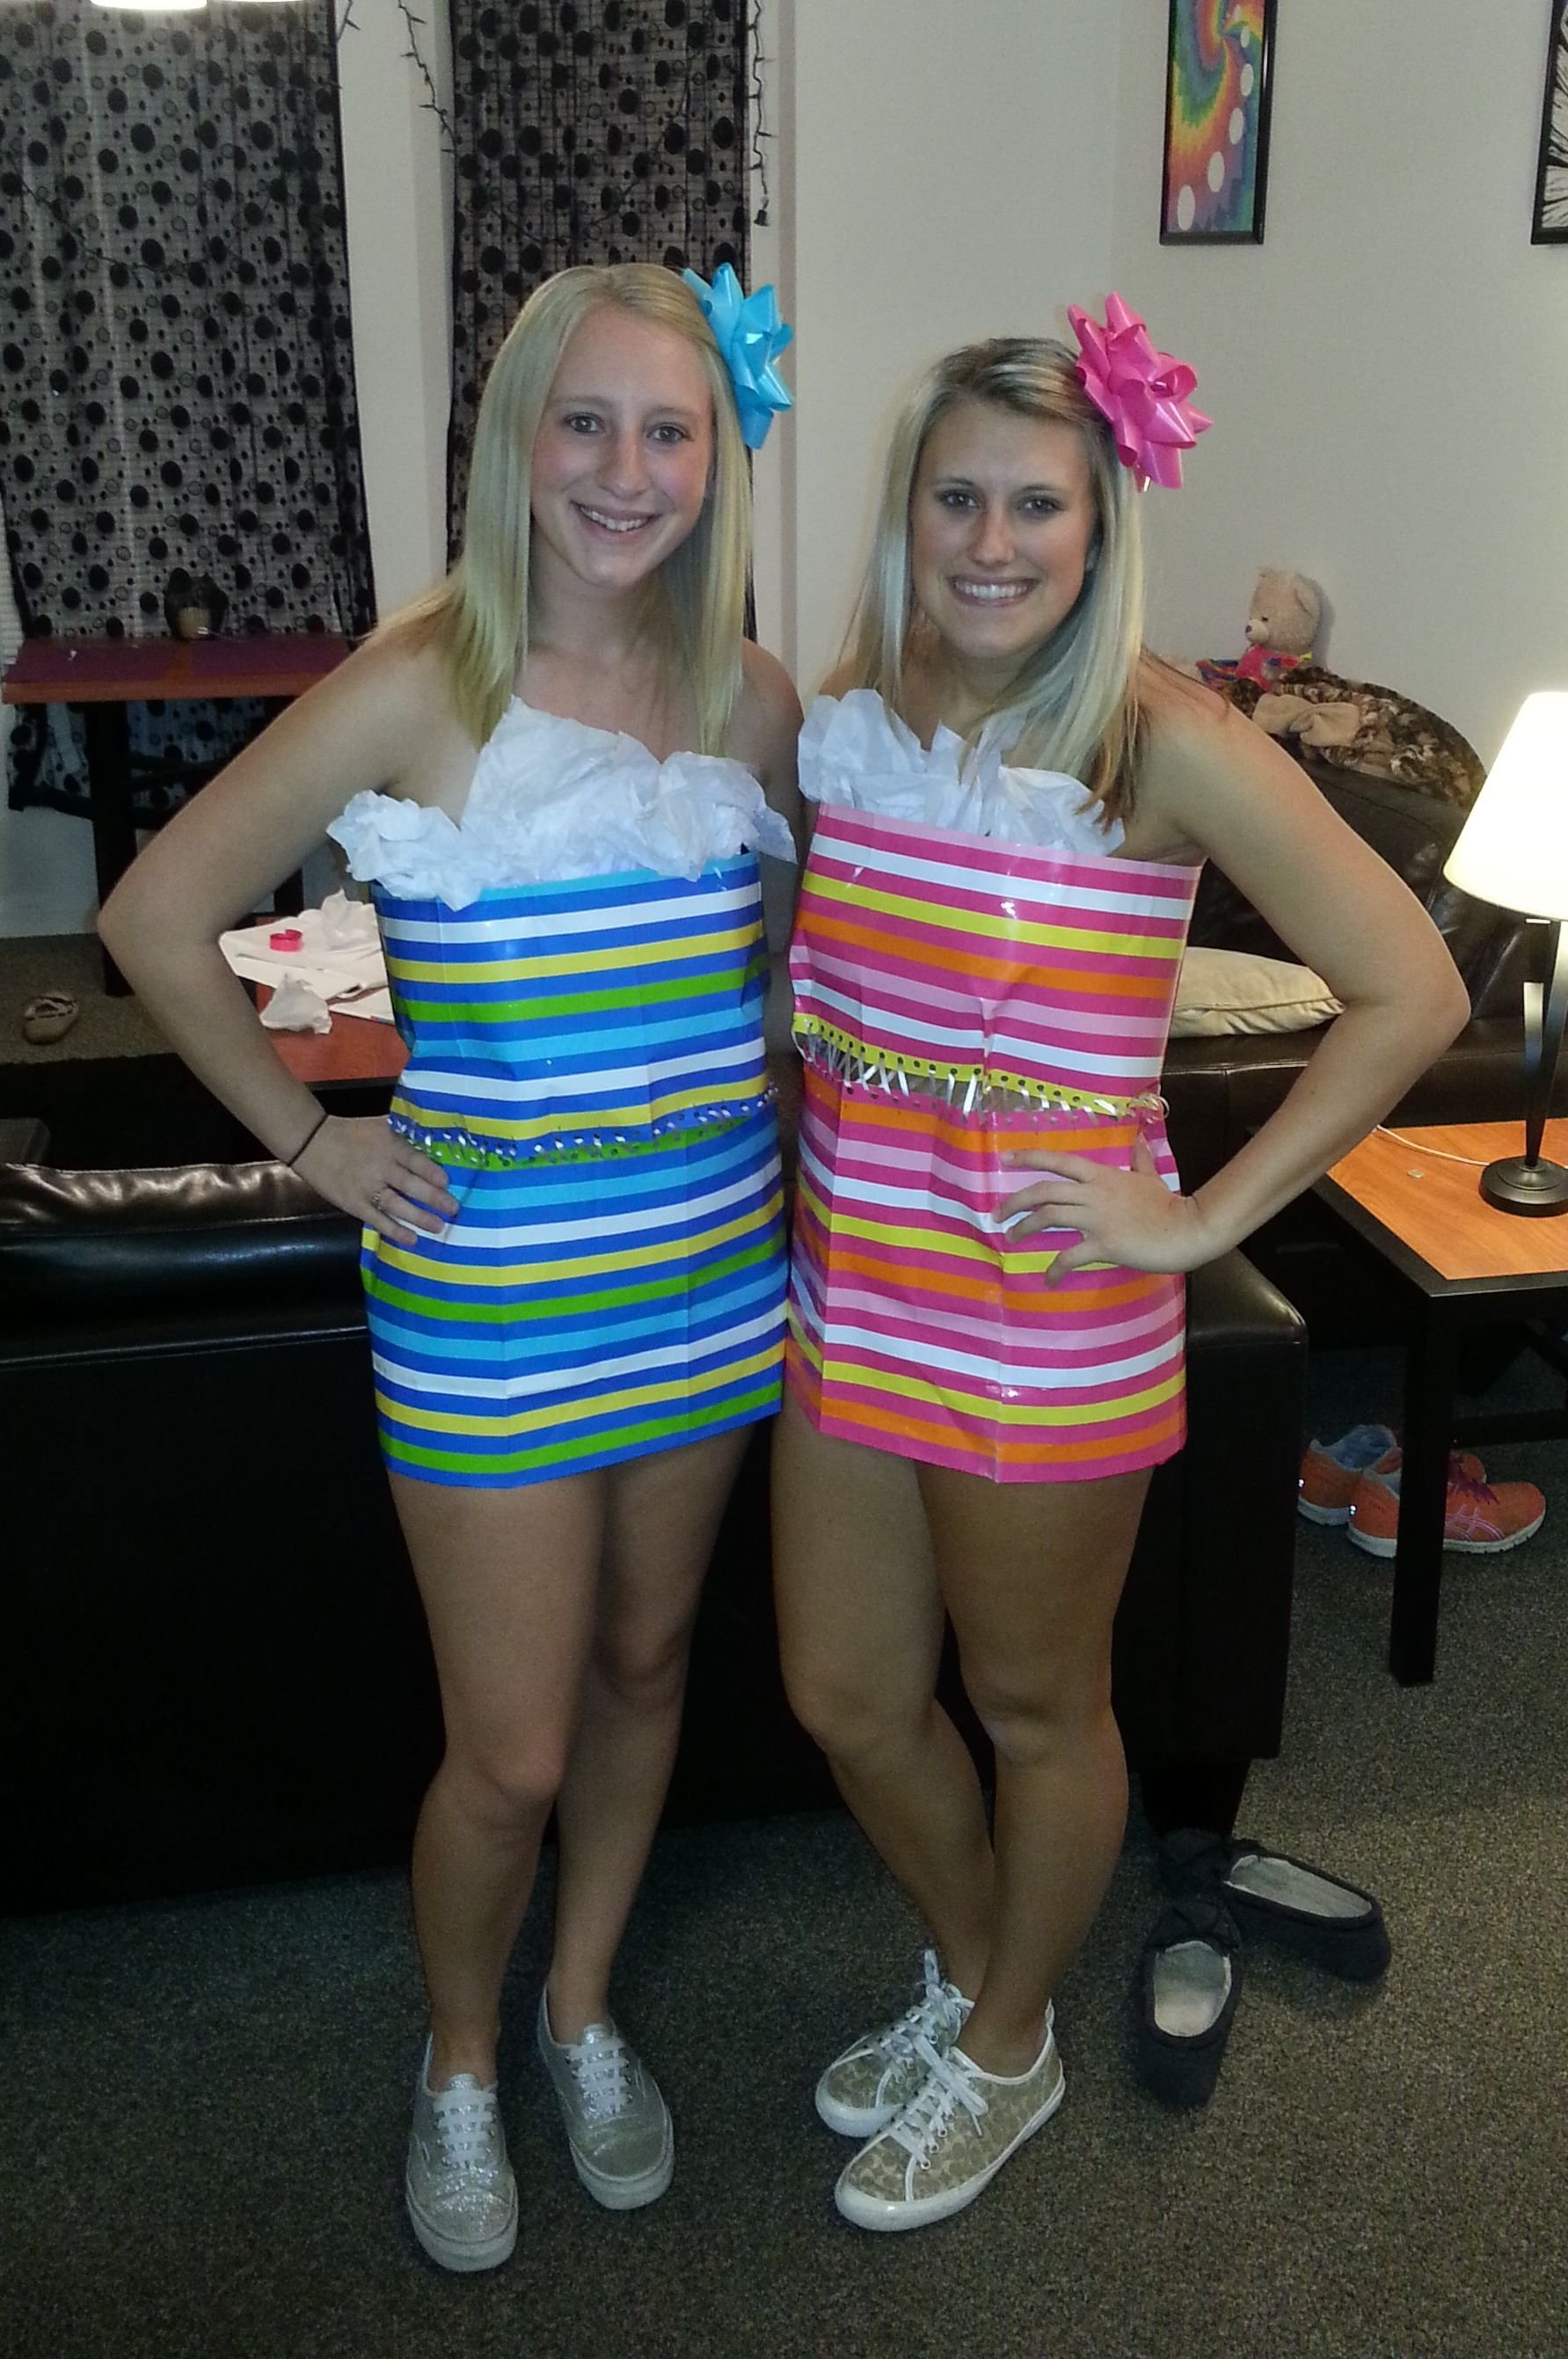 10 Ideal Anything But Clothes Costume Ideas definitely classier but great idea for an abc party  sc 1 st  Unique Ideas 2018 & 10 Ideal Anything But Clothes Costume Ideas